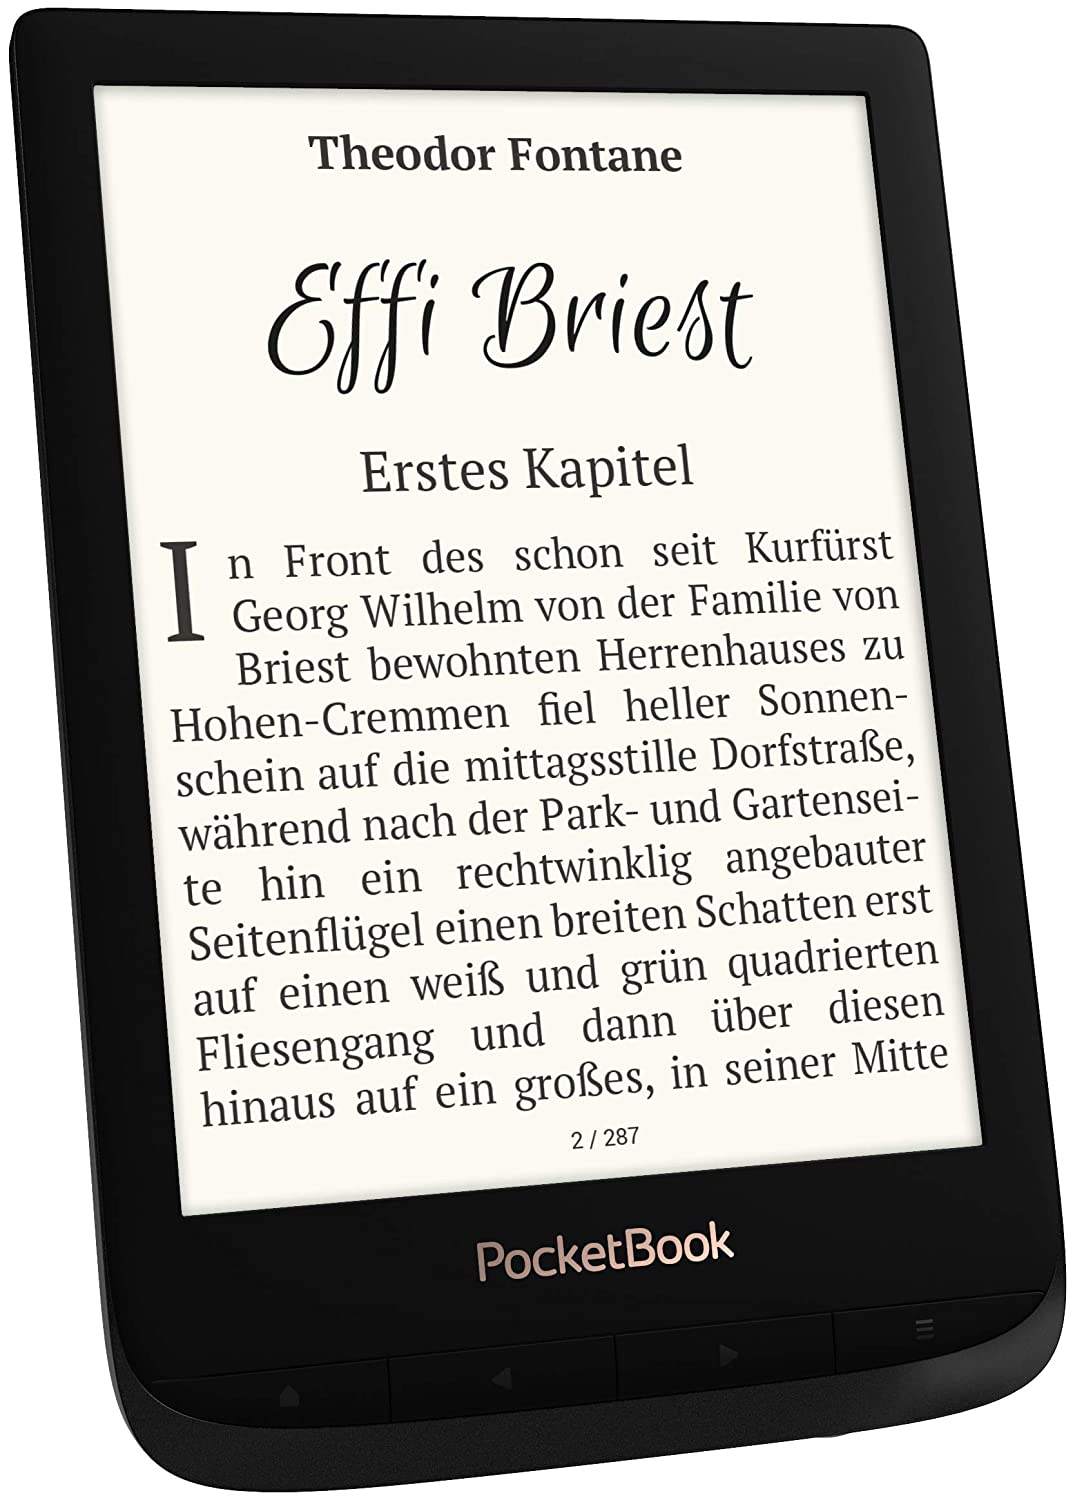 PocketBook 'Touch Lux 4' e-Book Reader Black